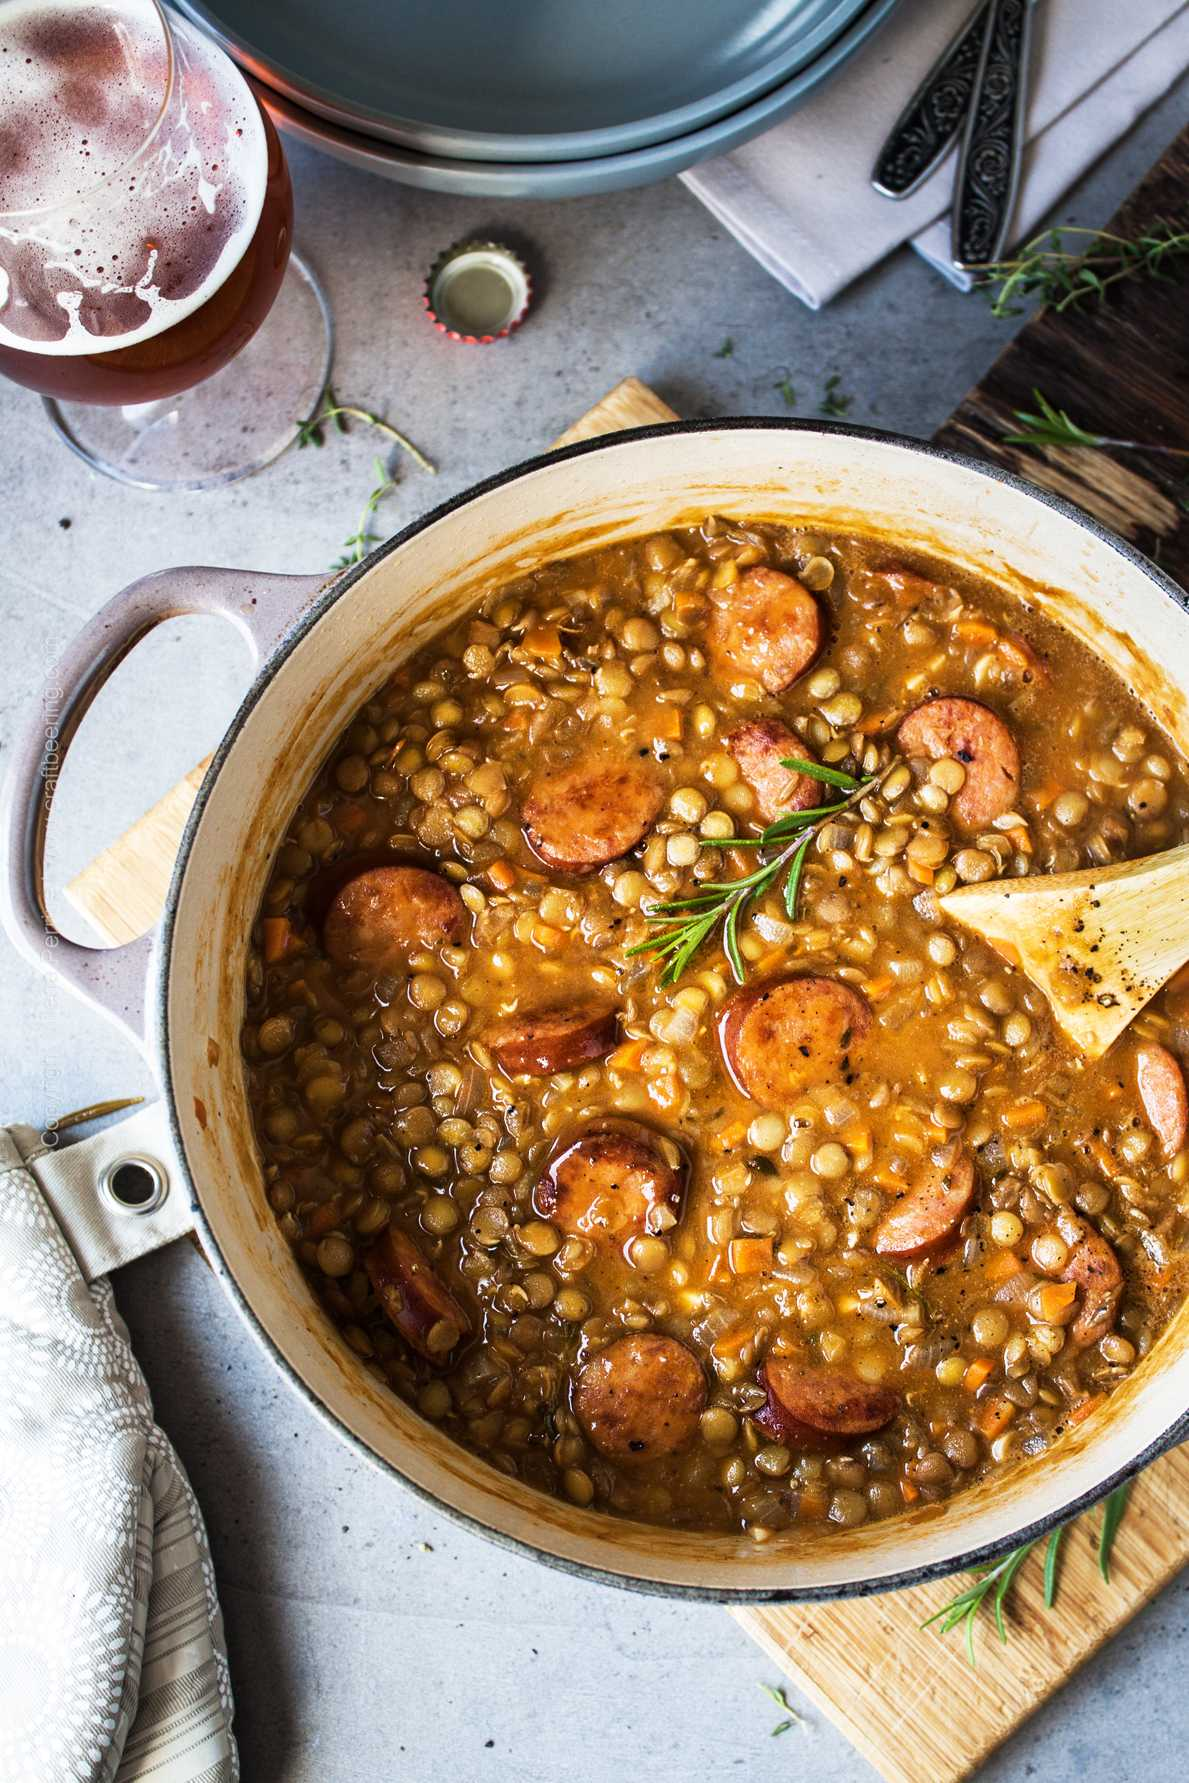 Lentil stew with Andouille sausage and rosemary.